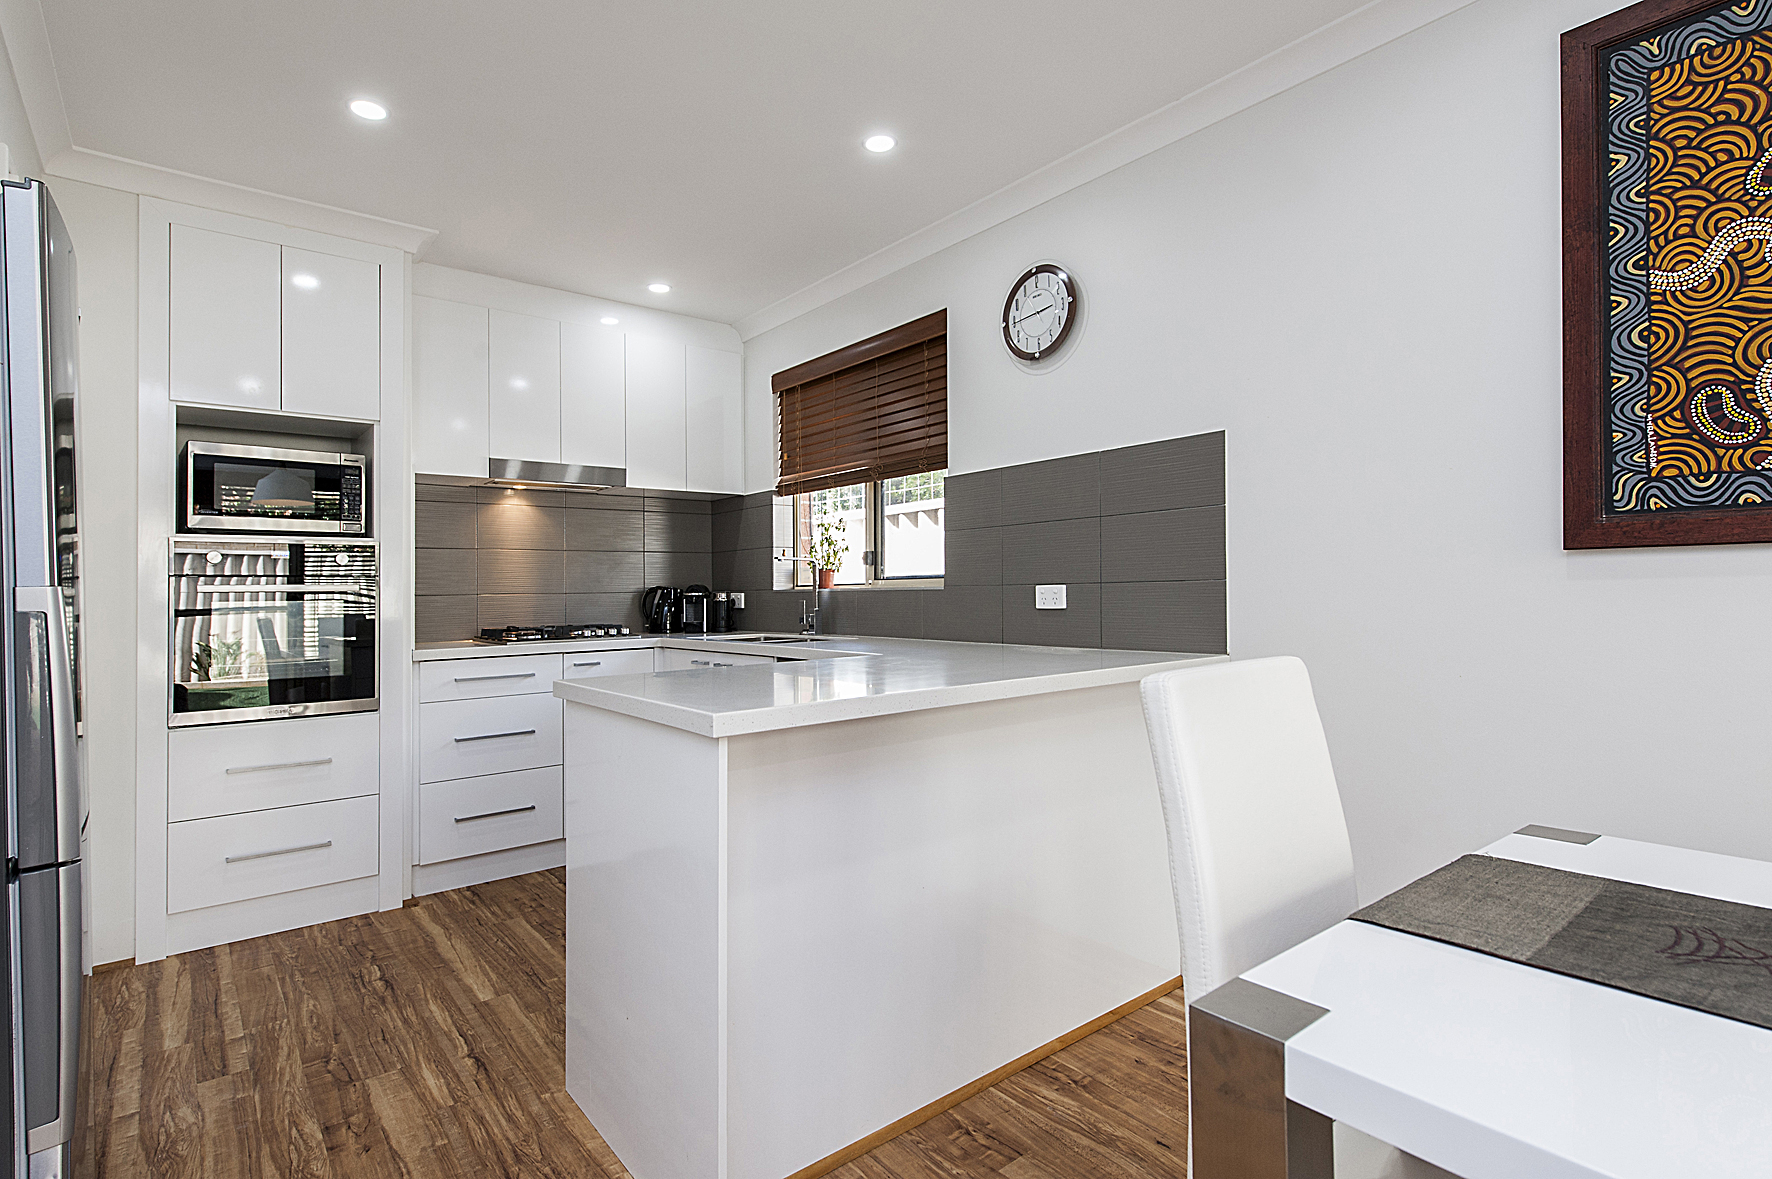 Entertainer - Perth Kitchen Renovations - Flexi Kitchens